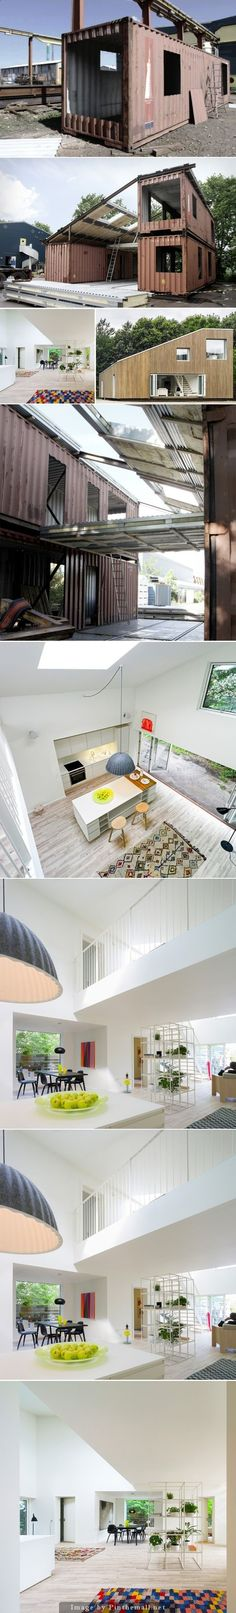 Container House - Upcycled Shipping Container House - Find out how to create one here howtobuildashippi... - Who Else Wants Simple Step-By-Step Plans To Design And Build A Container Home From Scratch?